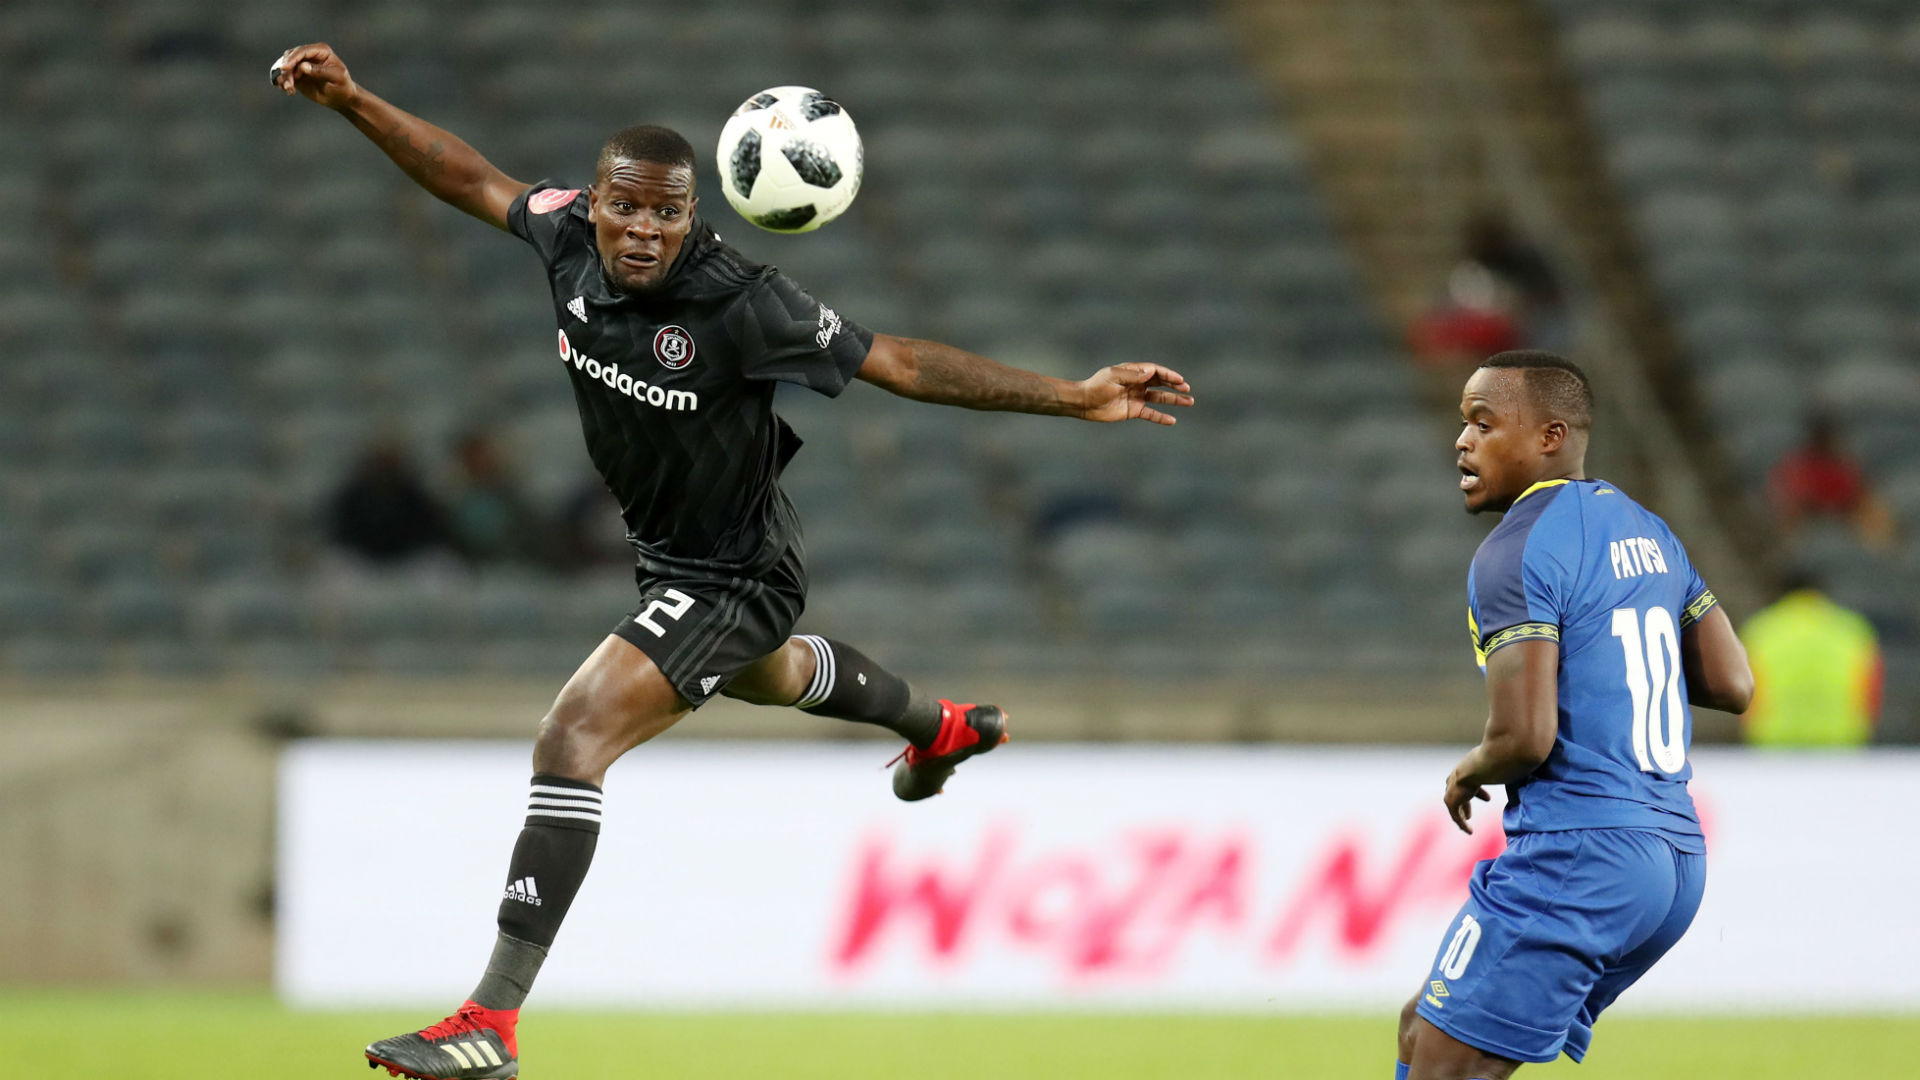 Orlando Pirates v Cape Town City September 2018